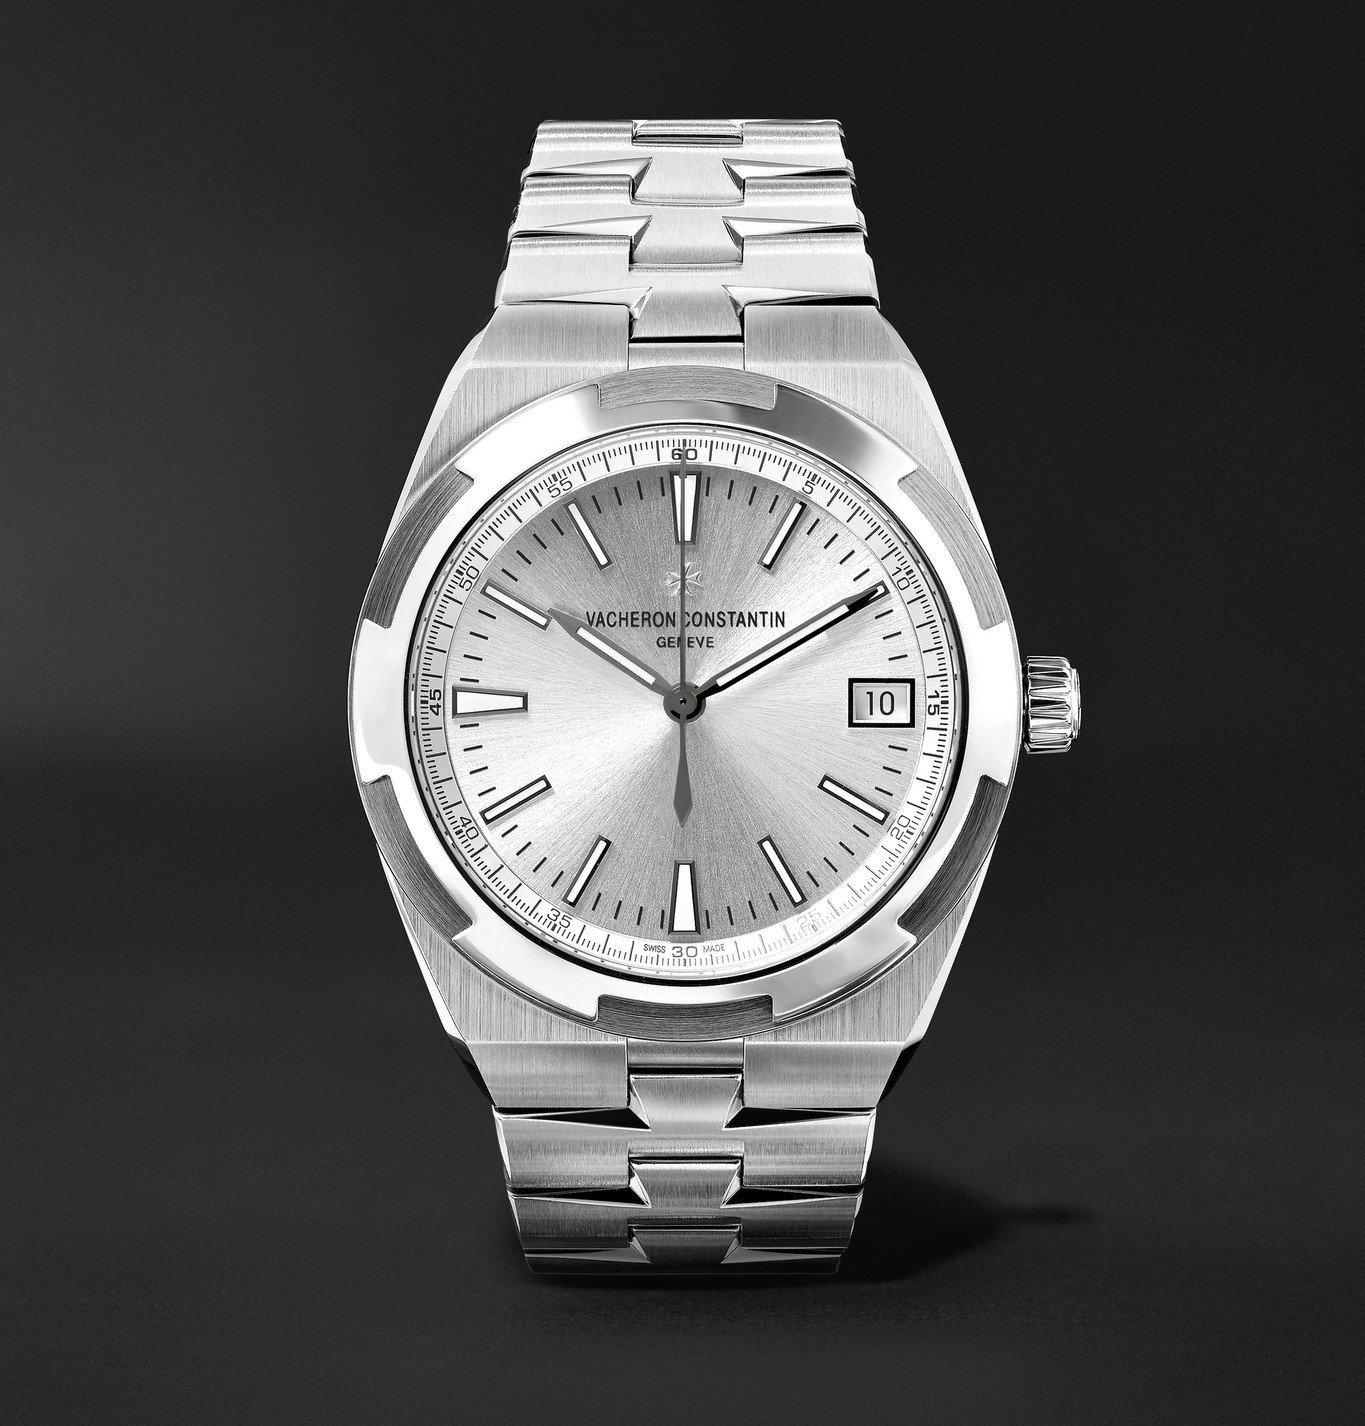 Photo: Vacheron Constantin - Overseas Automatic 41mm Stainless Steel Watch, Ref. No. 4500V/110A-B126 X45A9727 - Unknown